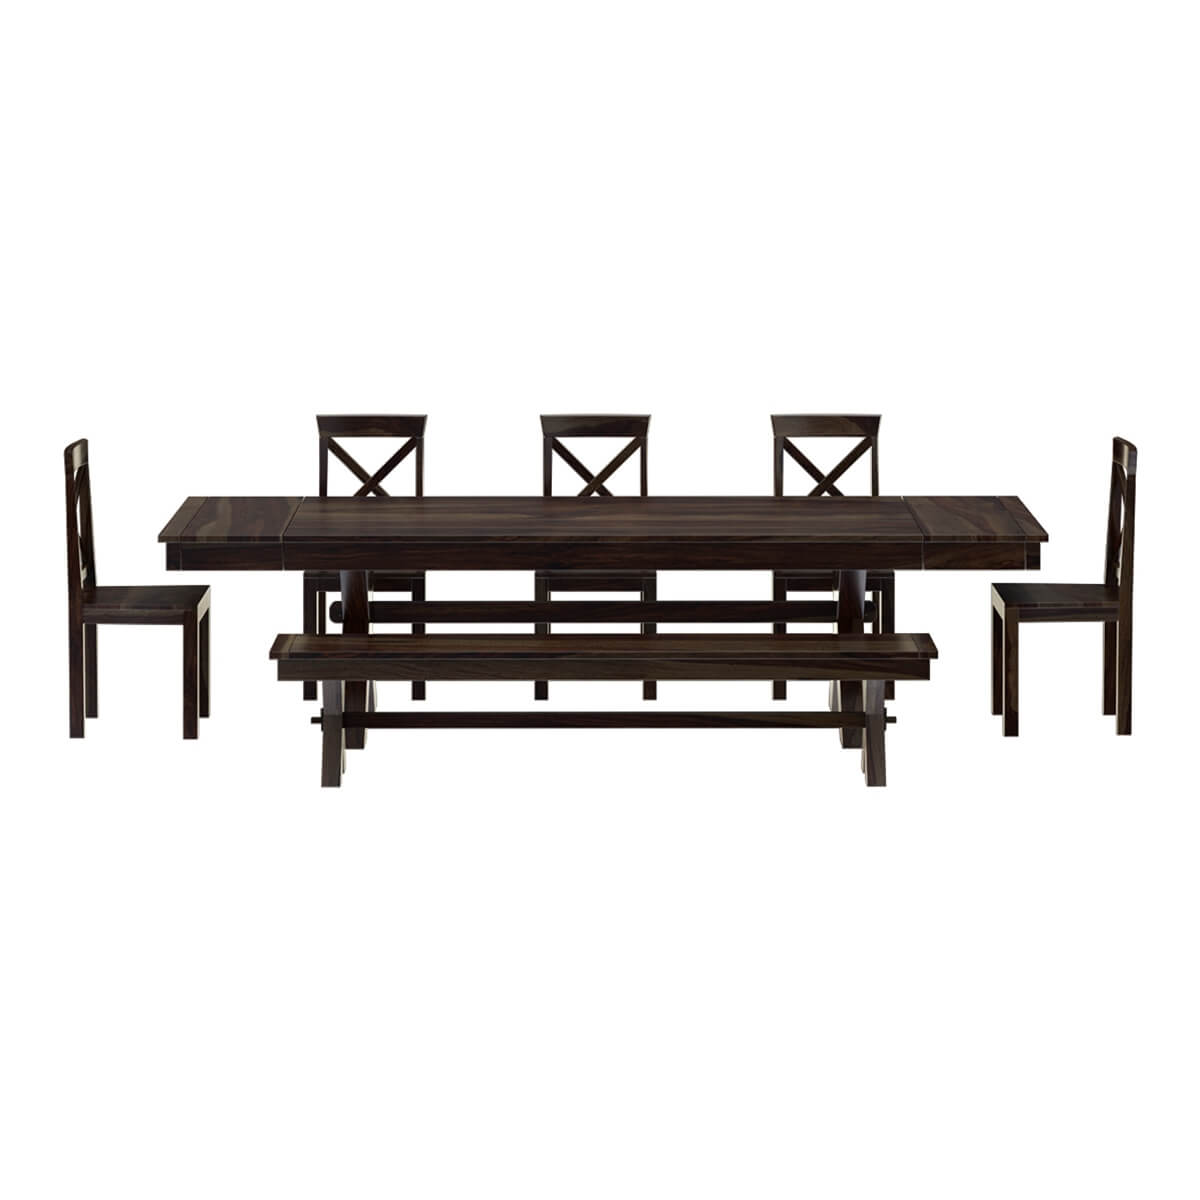 Westside indoor picnic style dining table bench set with extensions Dining table and bench set